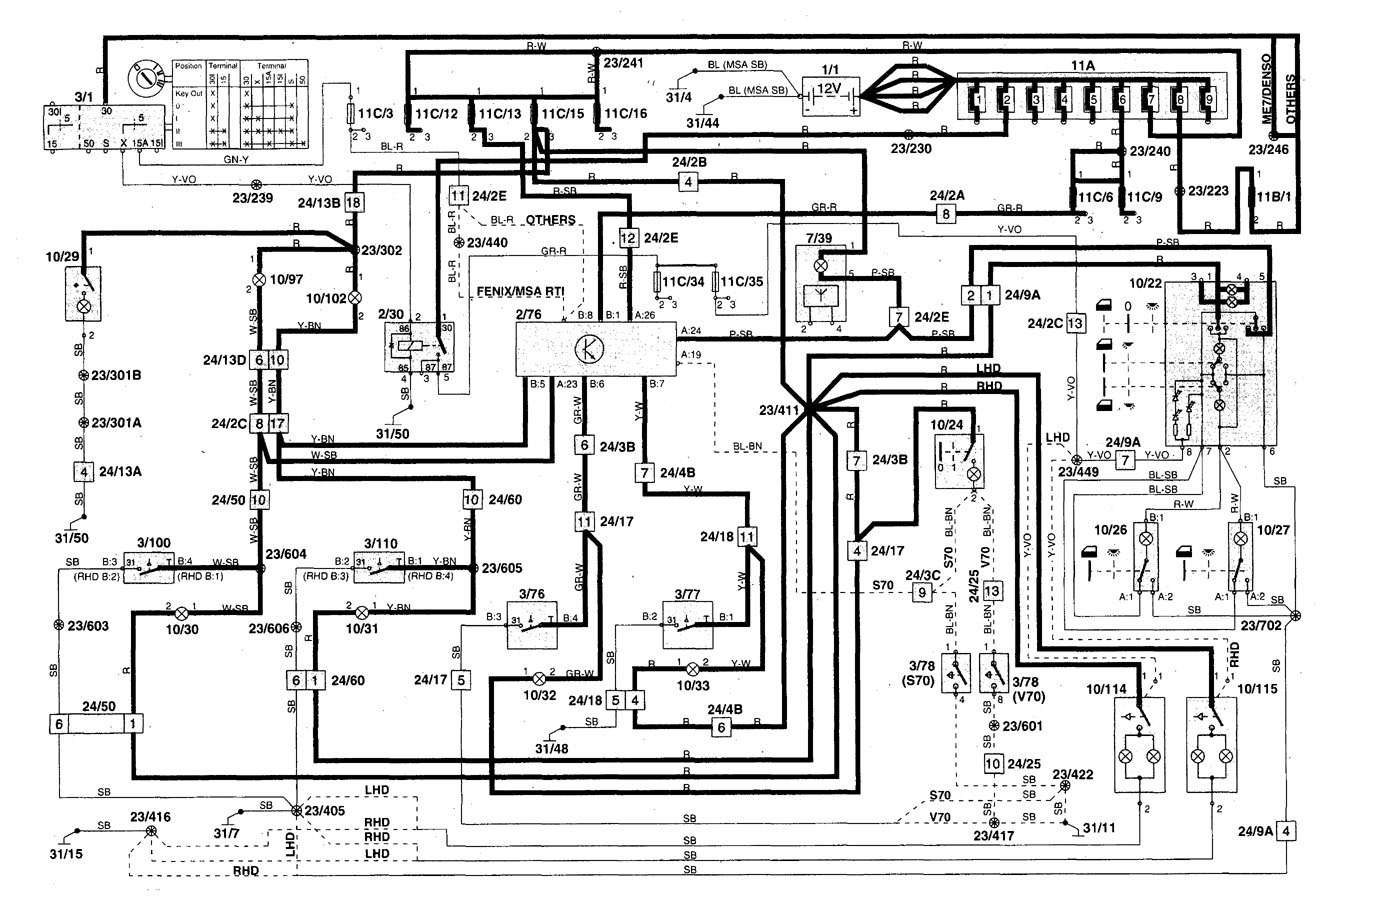 Volvo V70 Wiring Diagram 1999 Diagrams S70 1998 Interior Trailer 2001